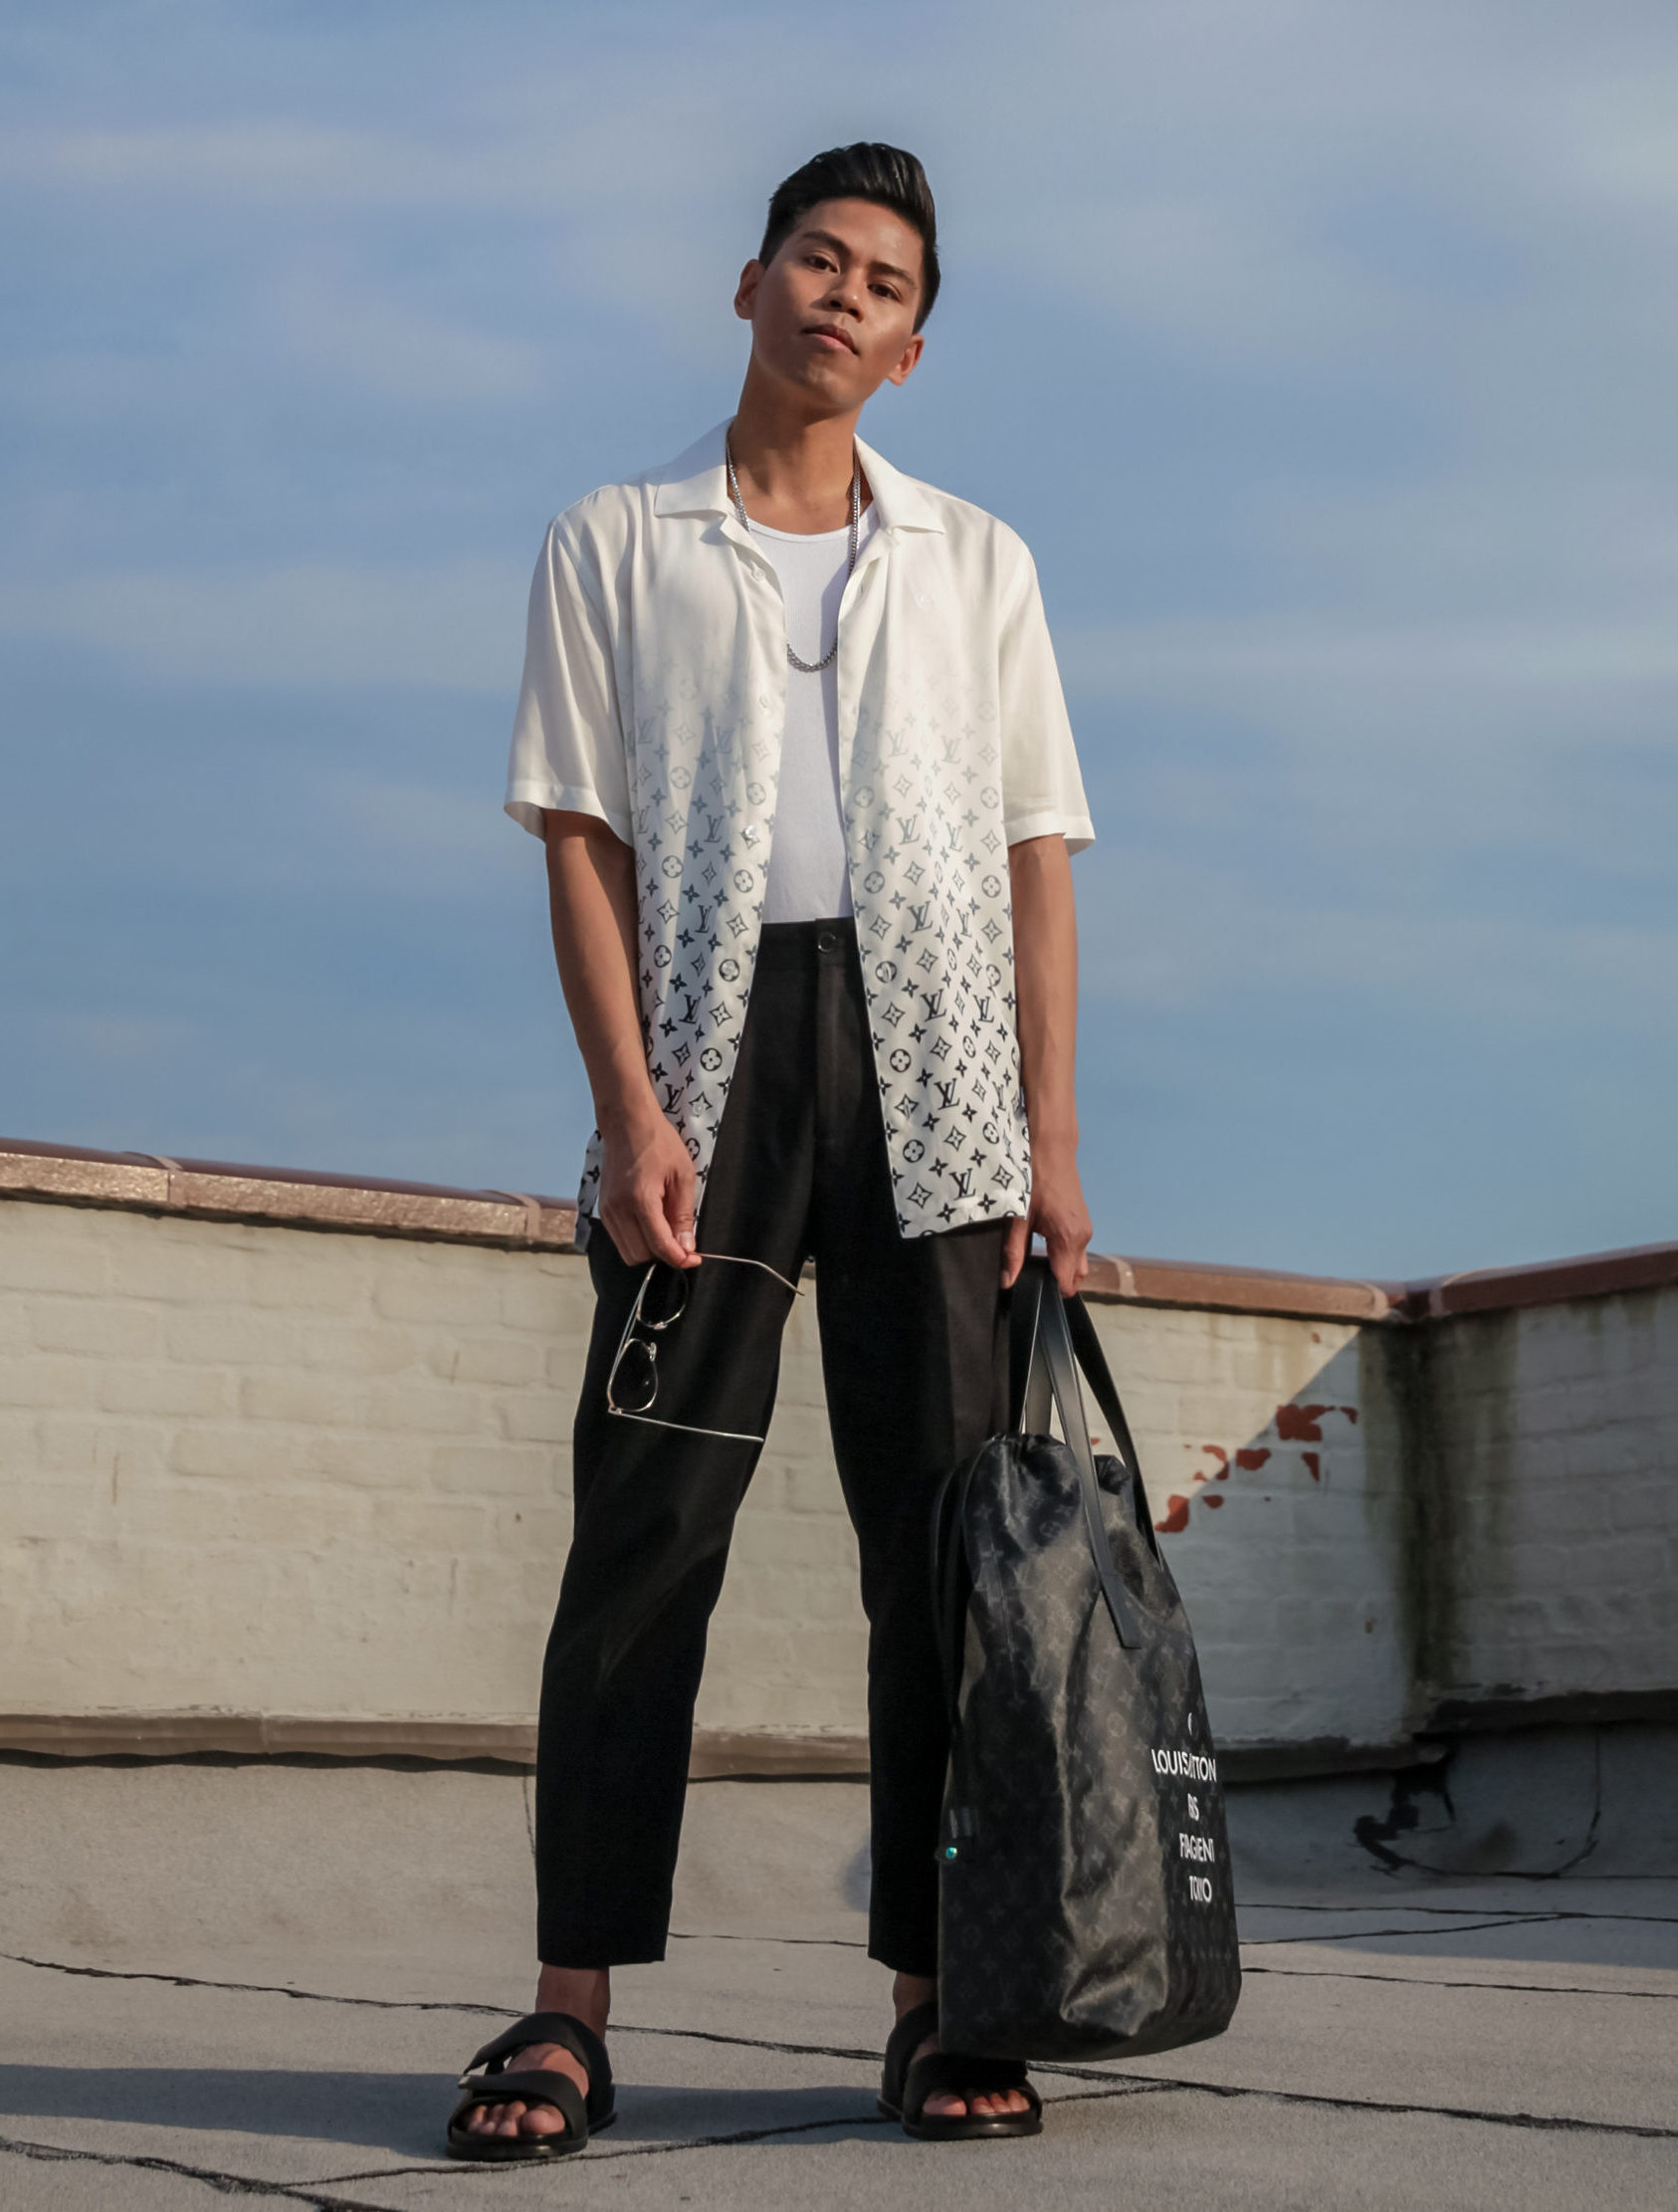 louis vuitton x fragment design lookbook street style blogger